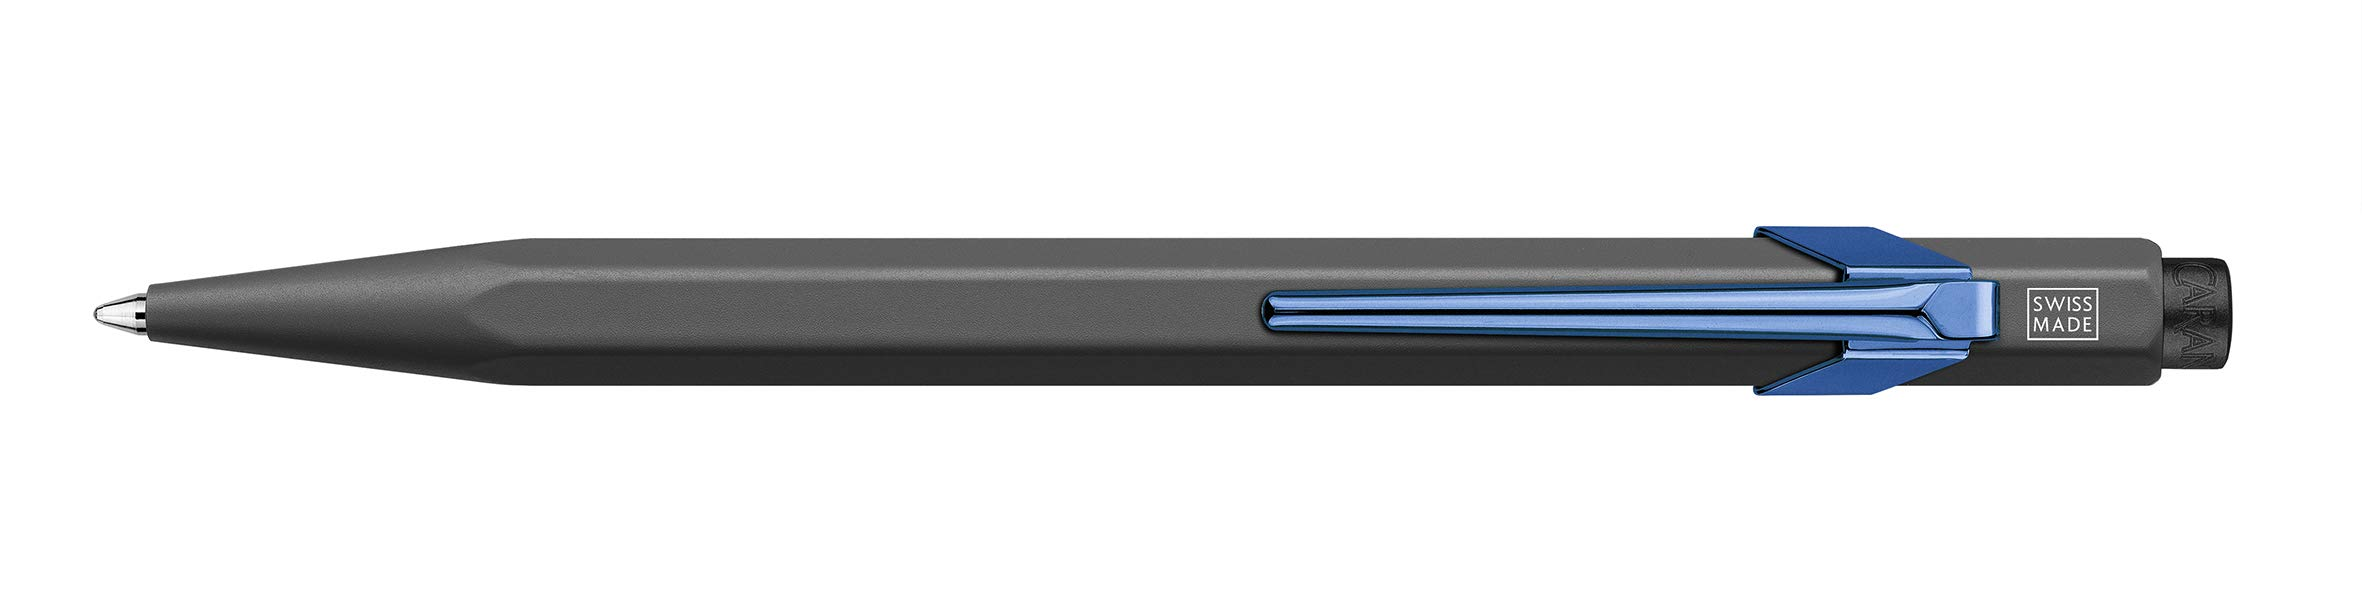 Caran d'Ache Claim Your Style Limited Edition 849 Ballpoint Pen, Grey (849.549)